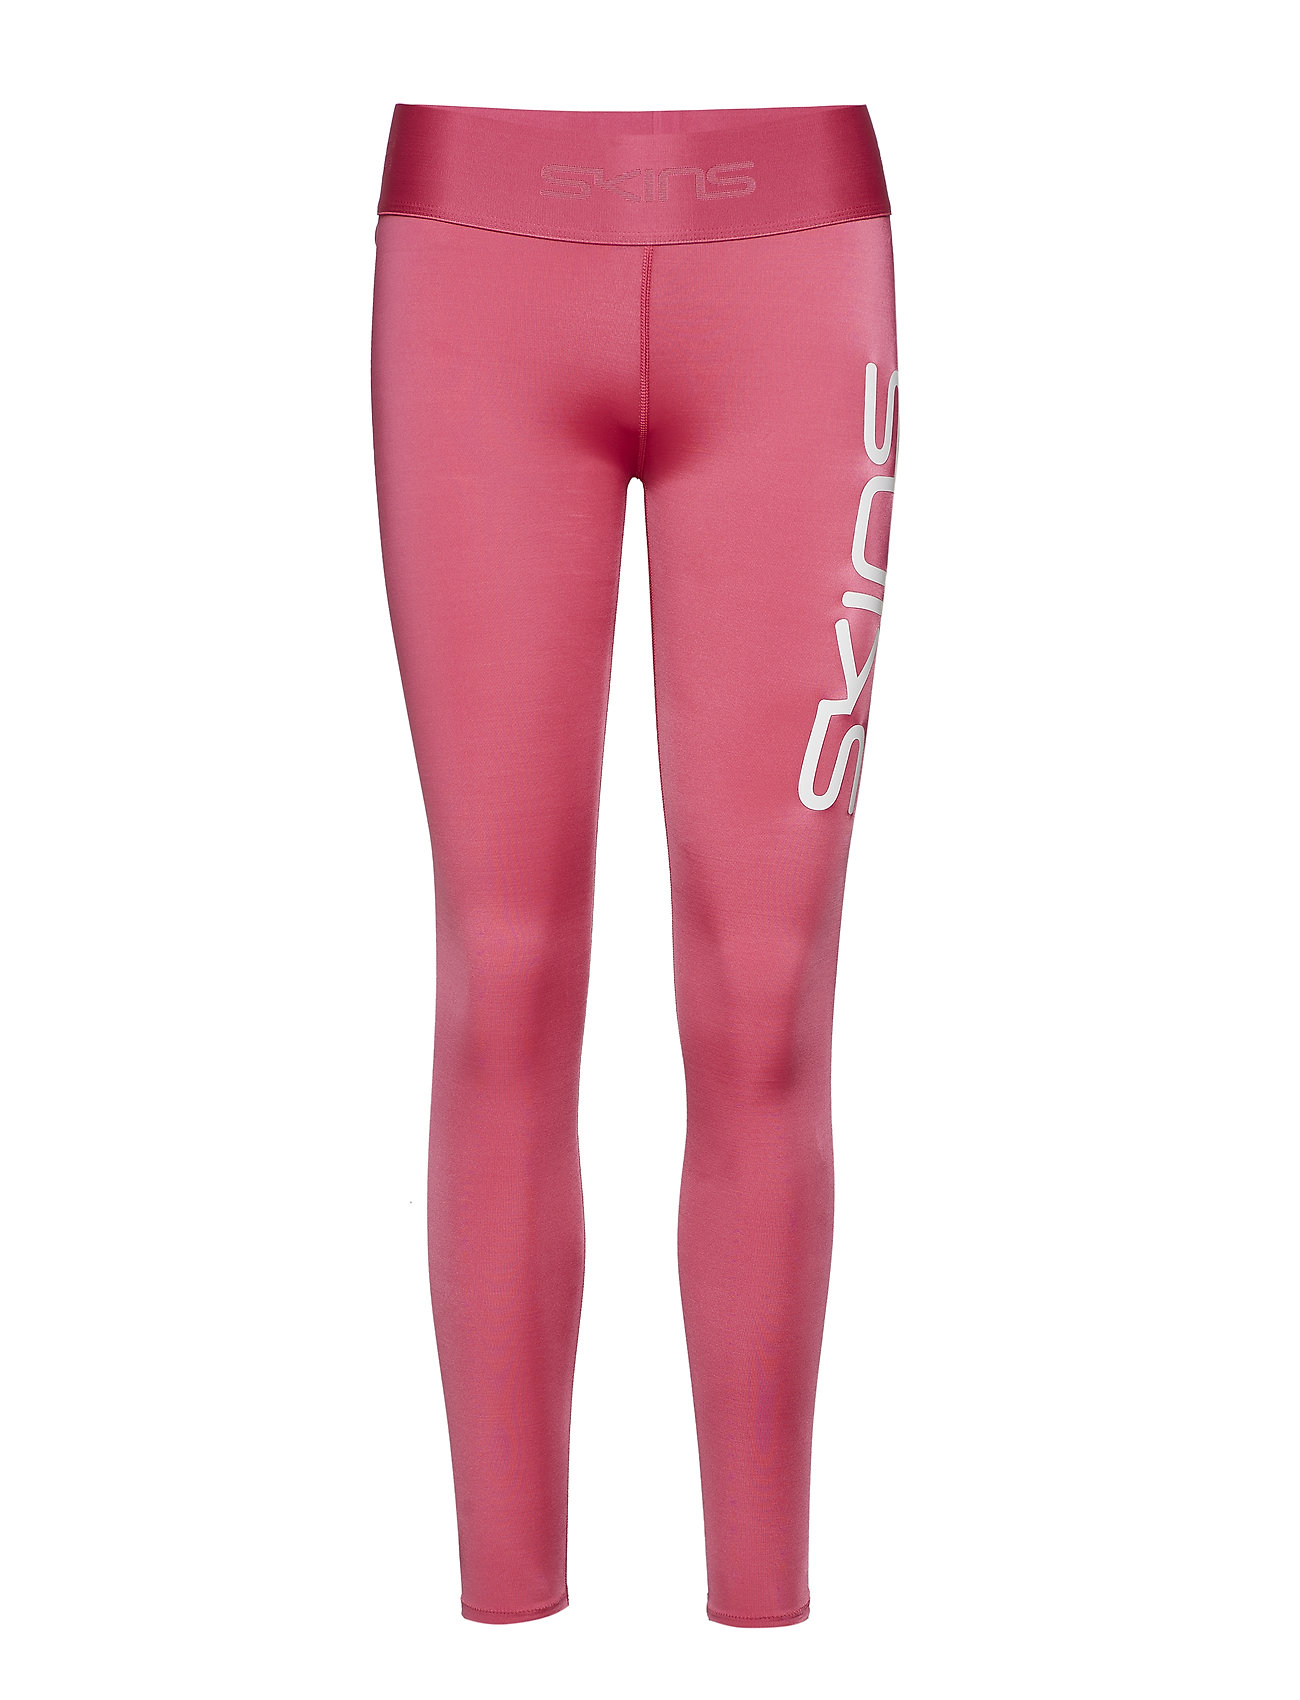 Long Tightspink LogoSkins Primary Dnamic Womens 3q54ARjL